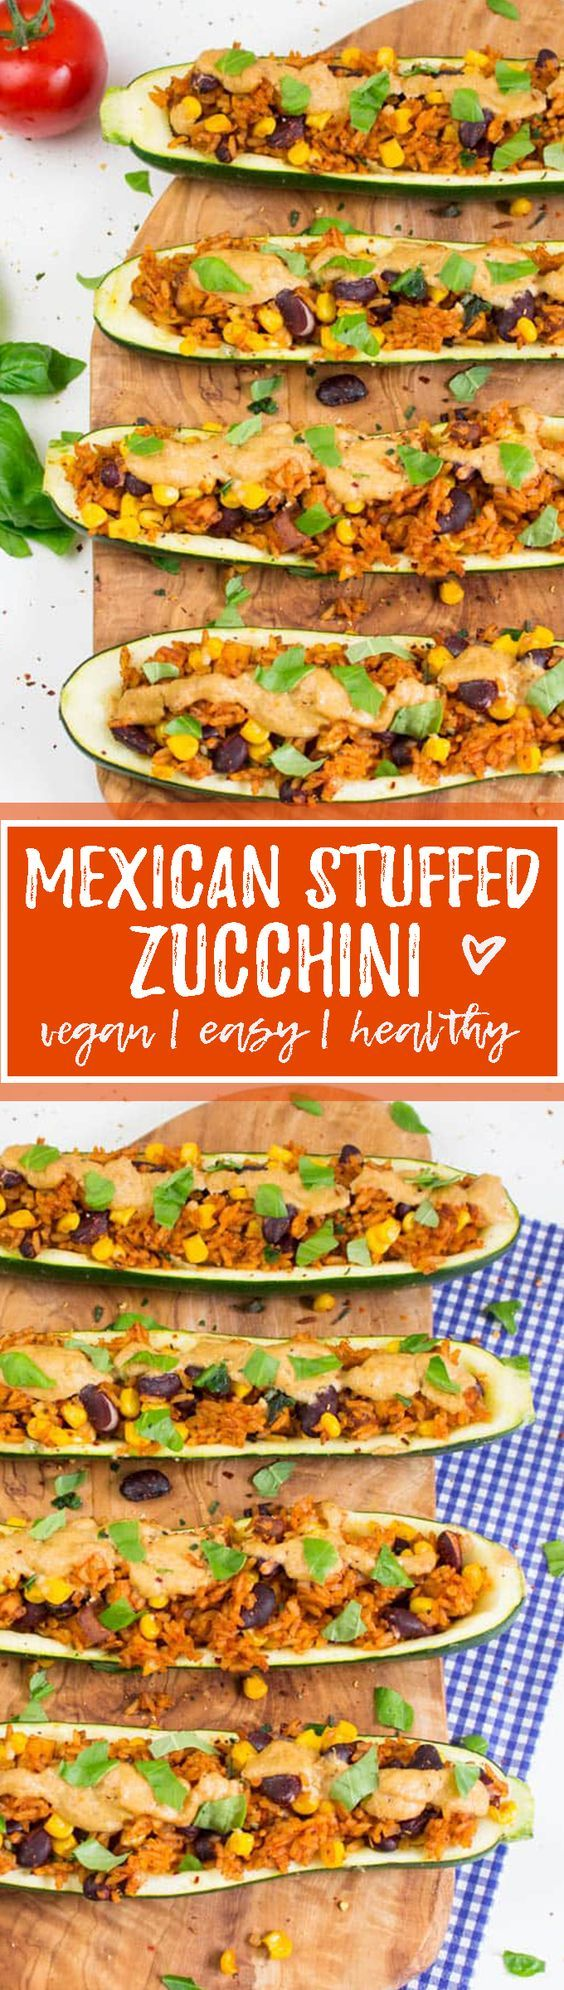 These Mexican stuffed zucchini with kidney beans, corn, and rice are one of my favorite vegan dinners! Super easy to make, SO delicious, and healthy! <3 | veganheaven.org